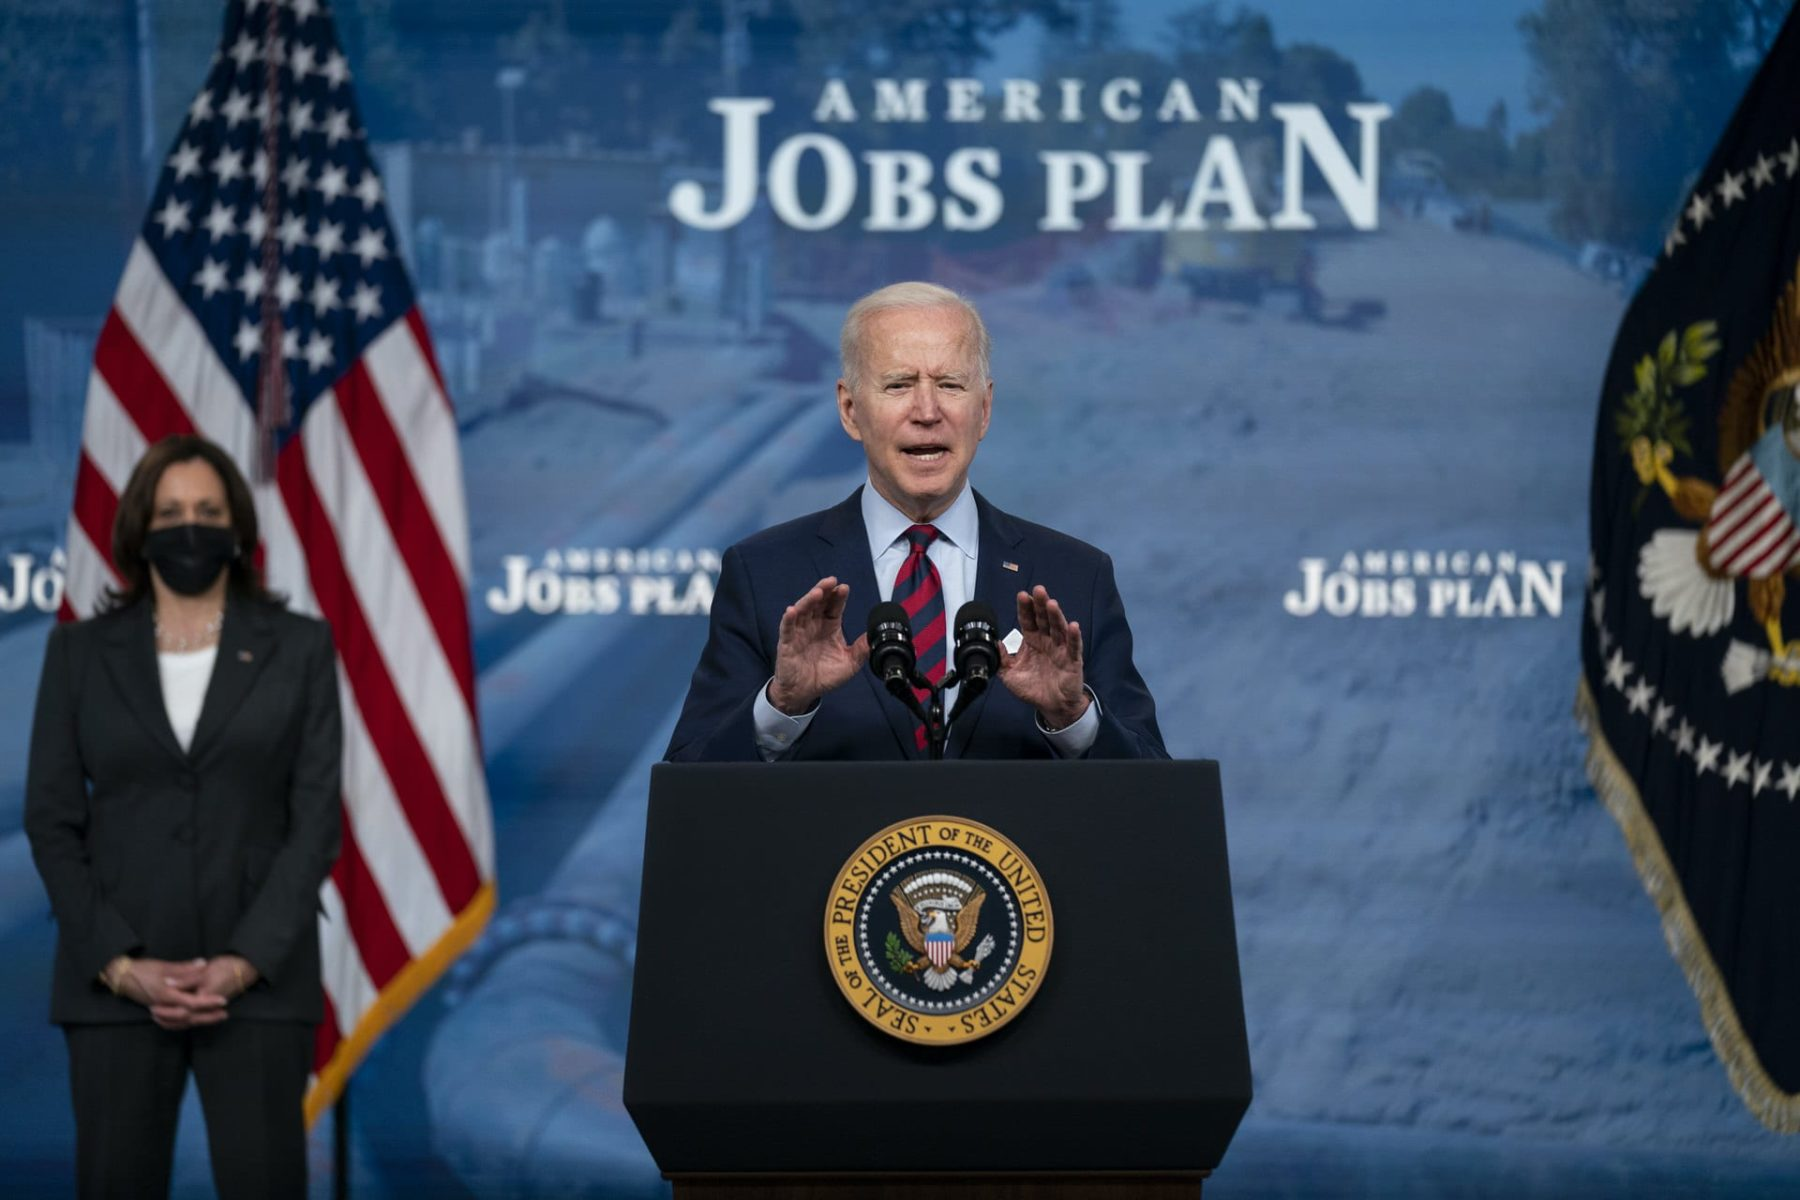 Joe Biden speaking at a podium in front of a backdrop that reads